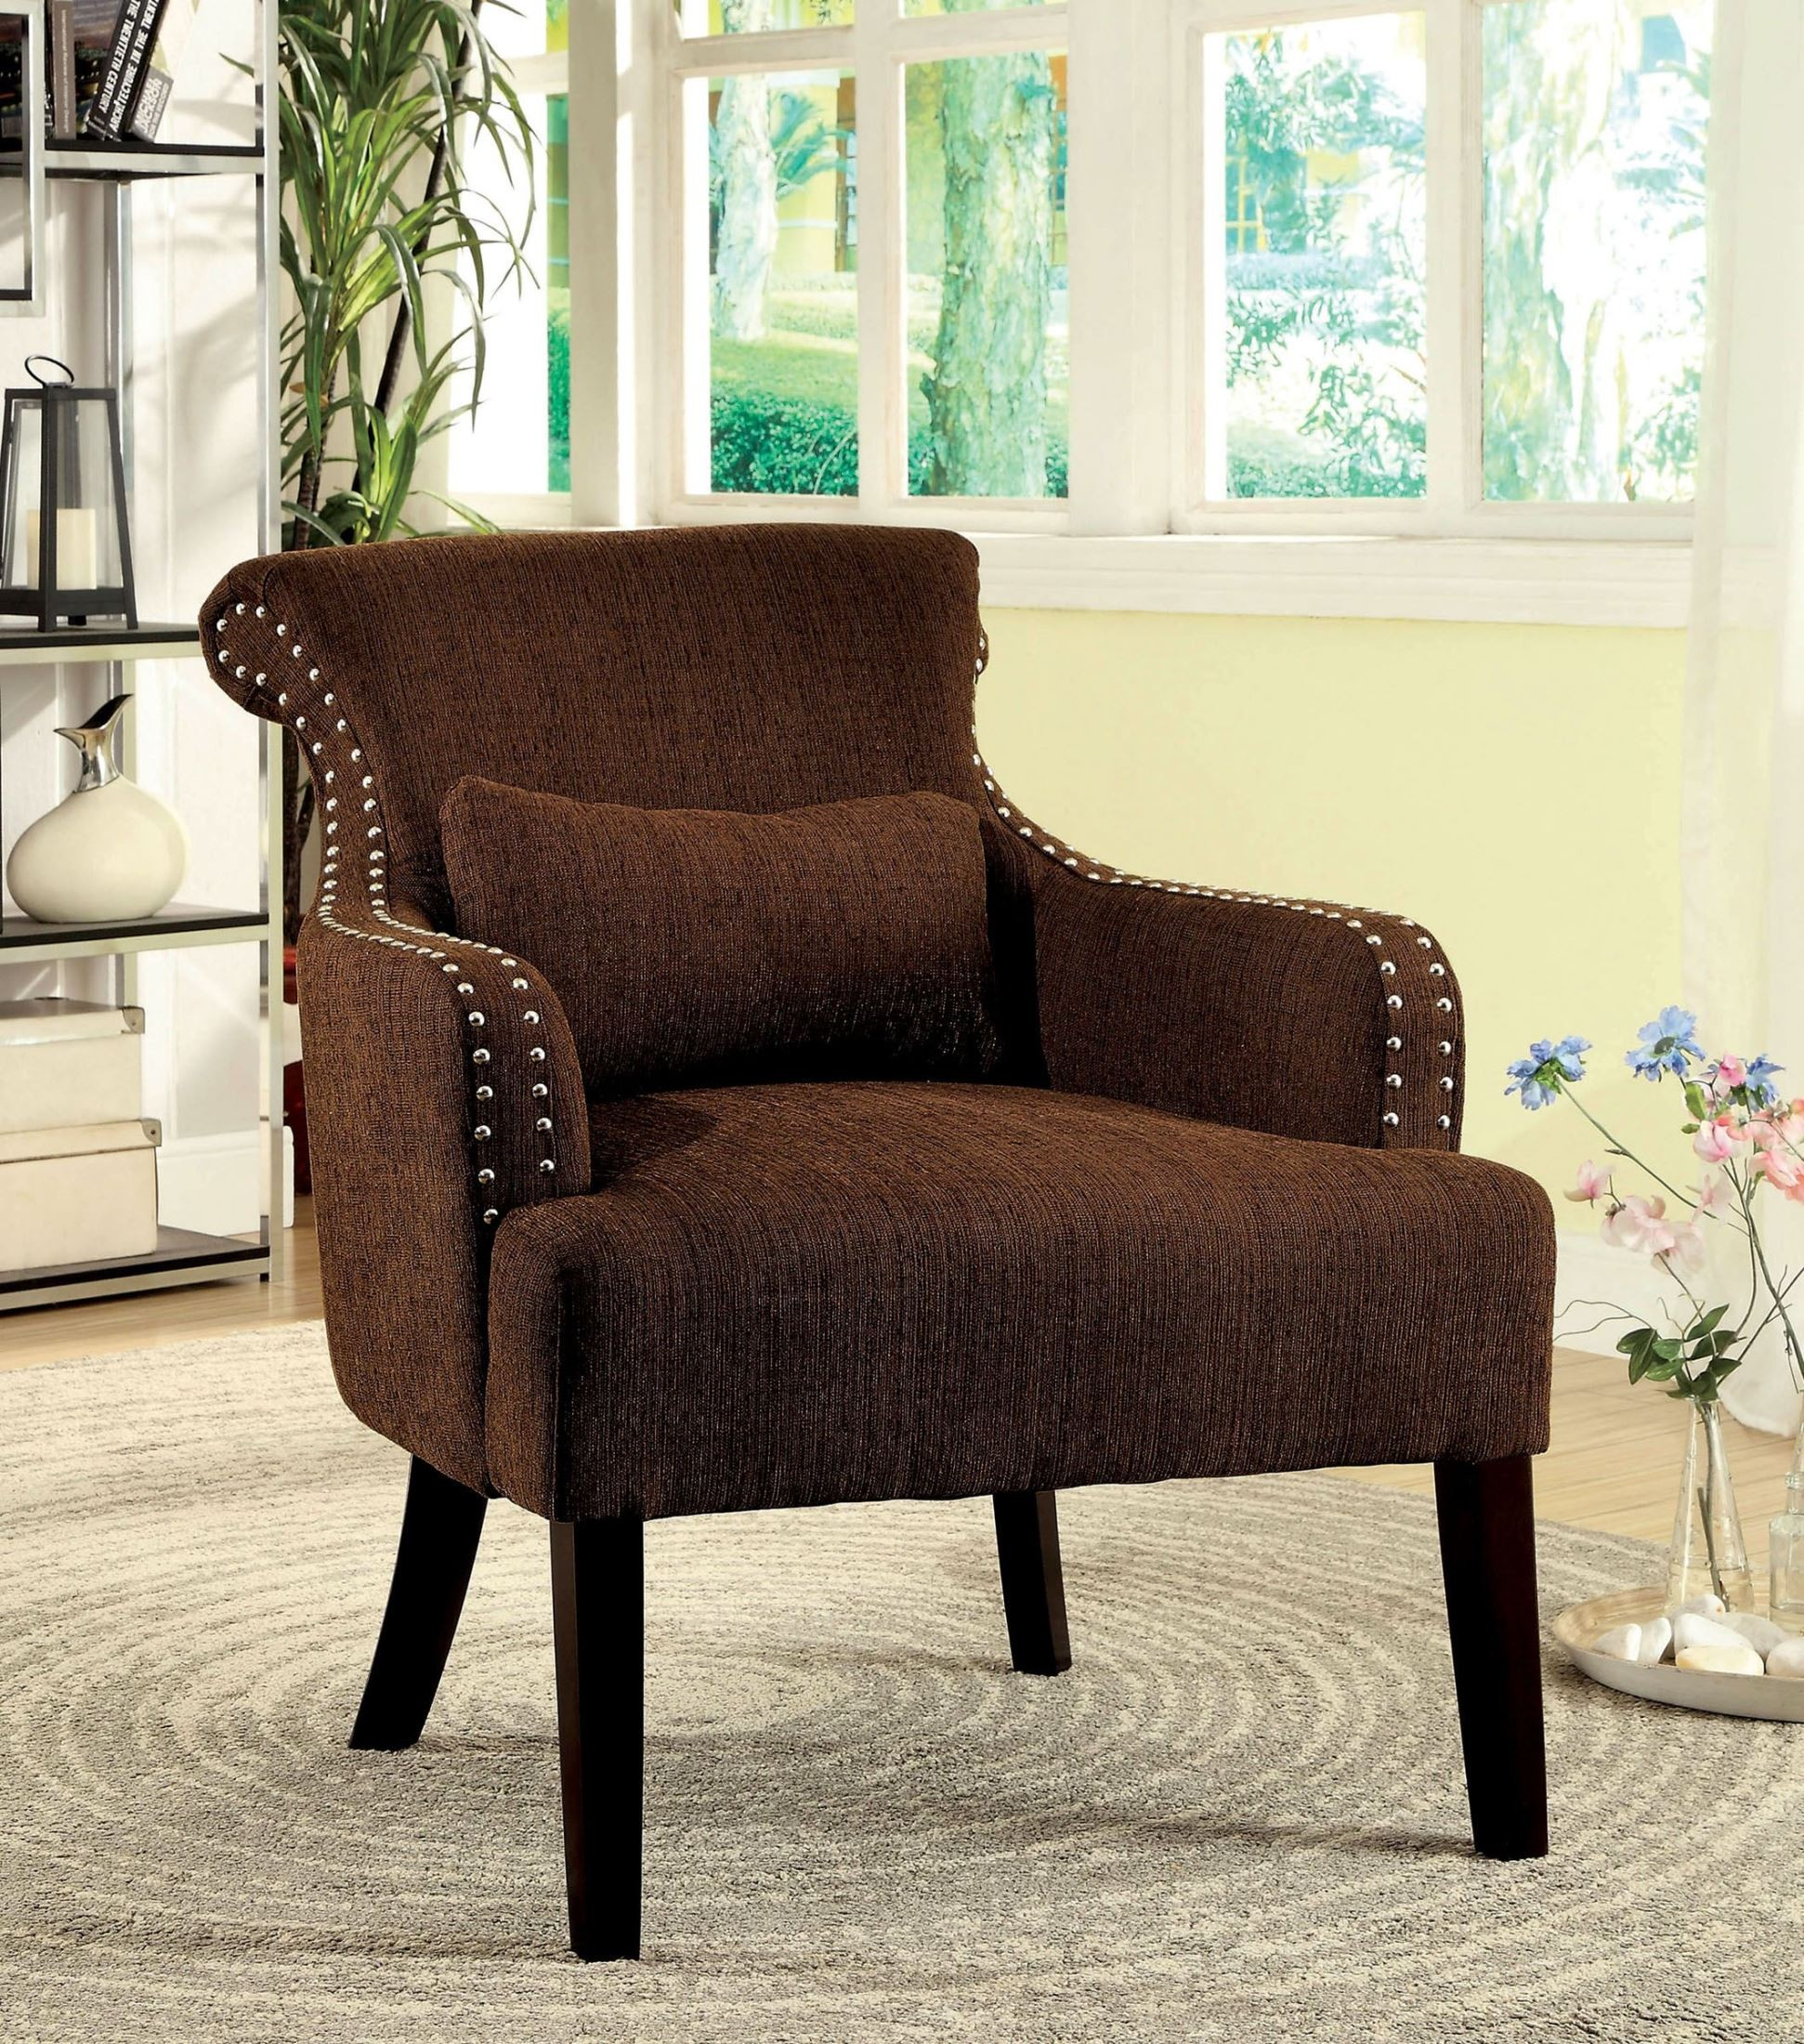 Agalva Brown Fabric Accent Chair from Furniture of America